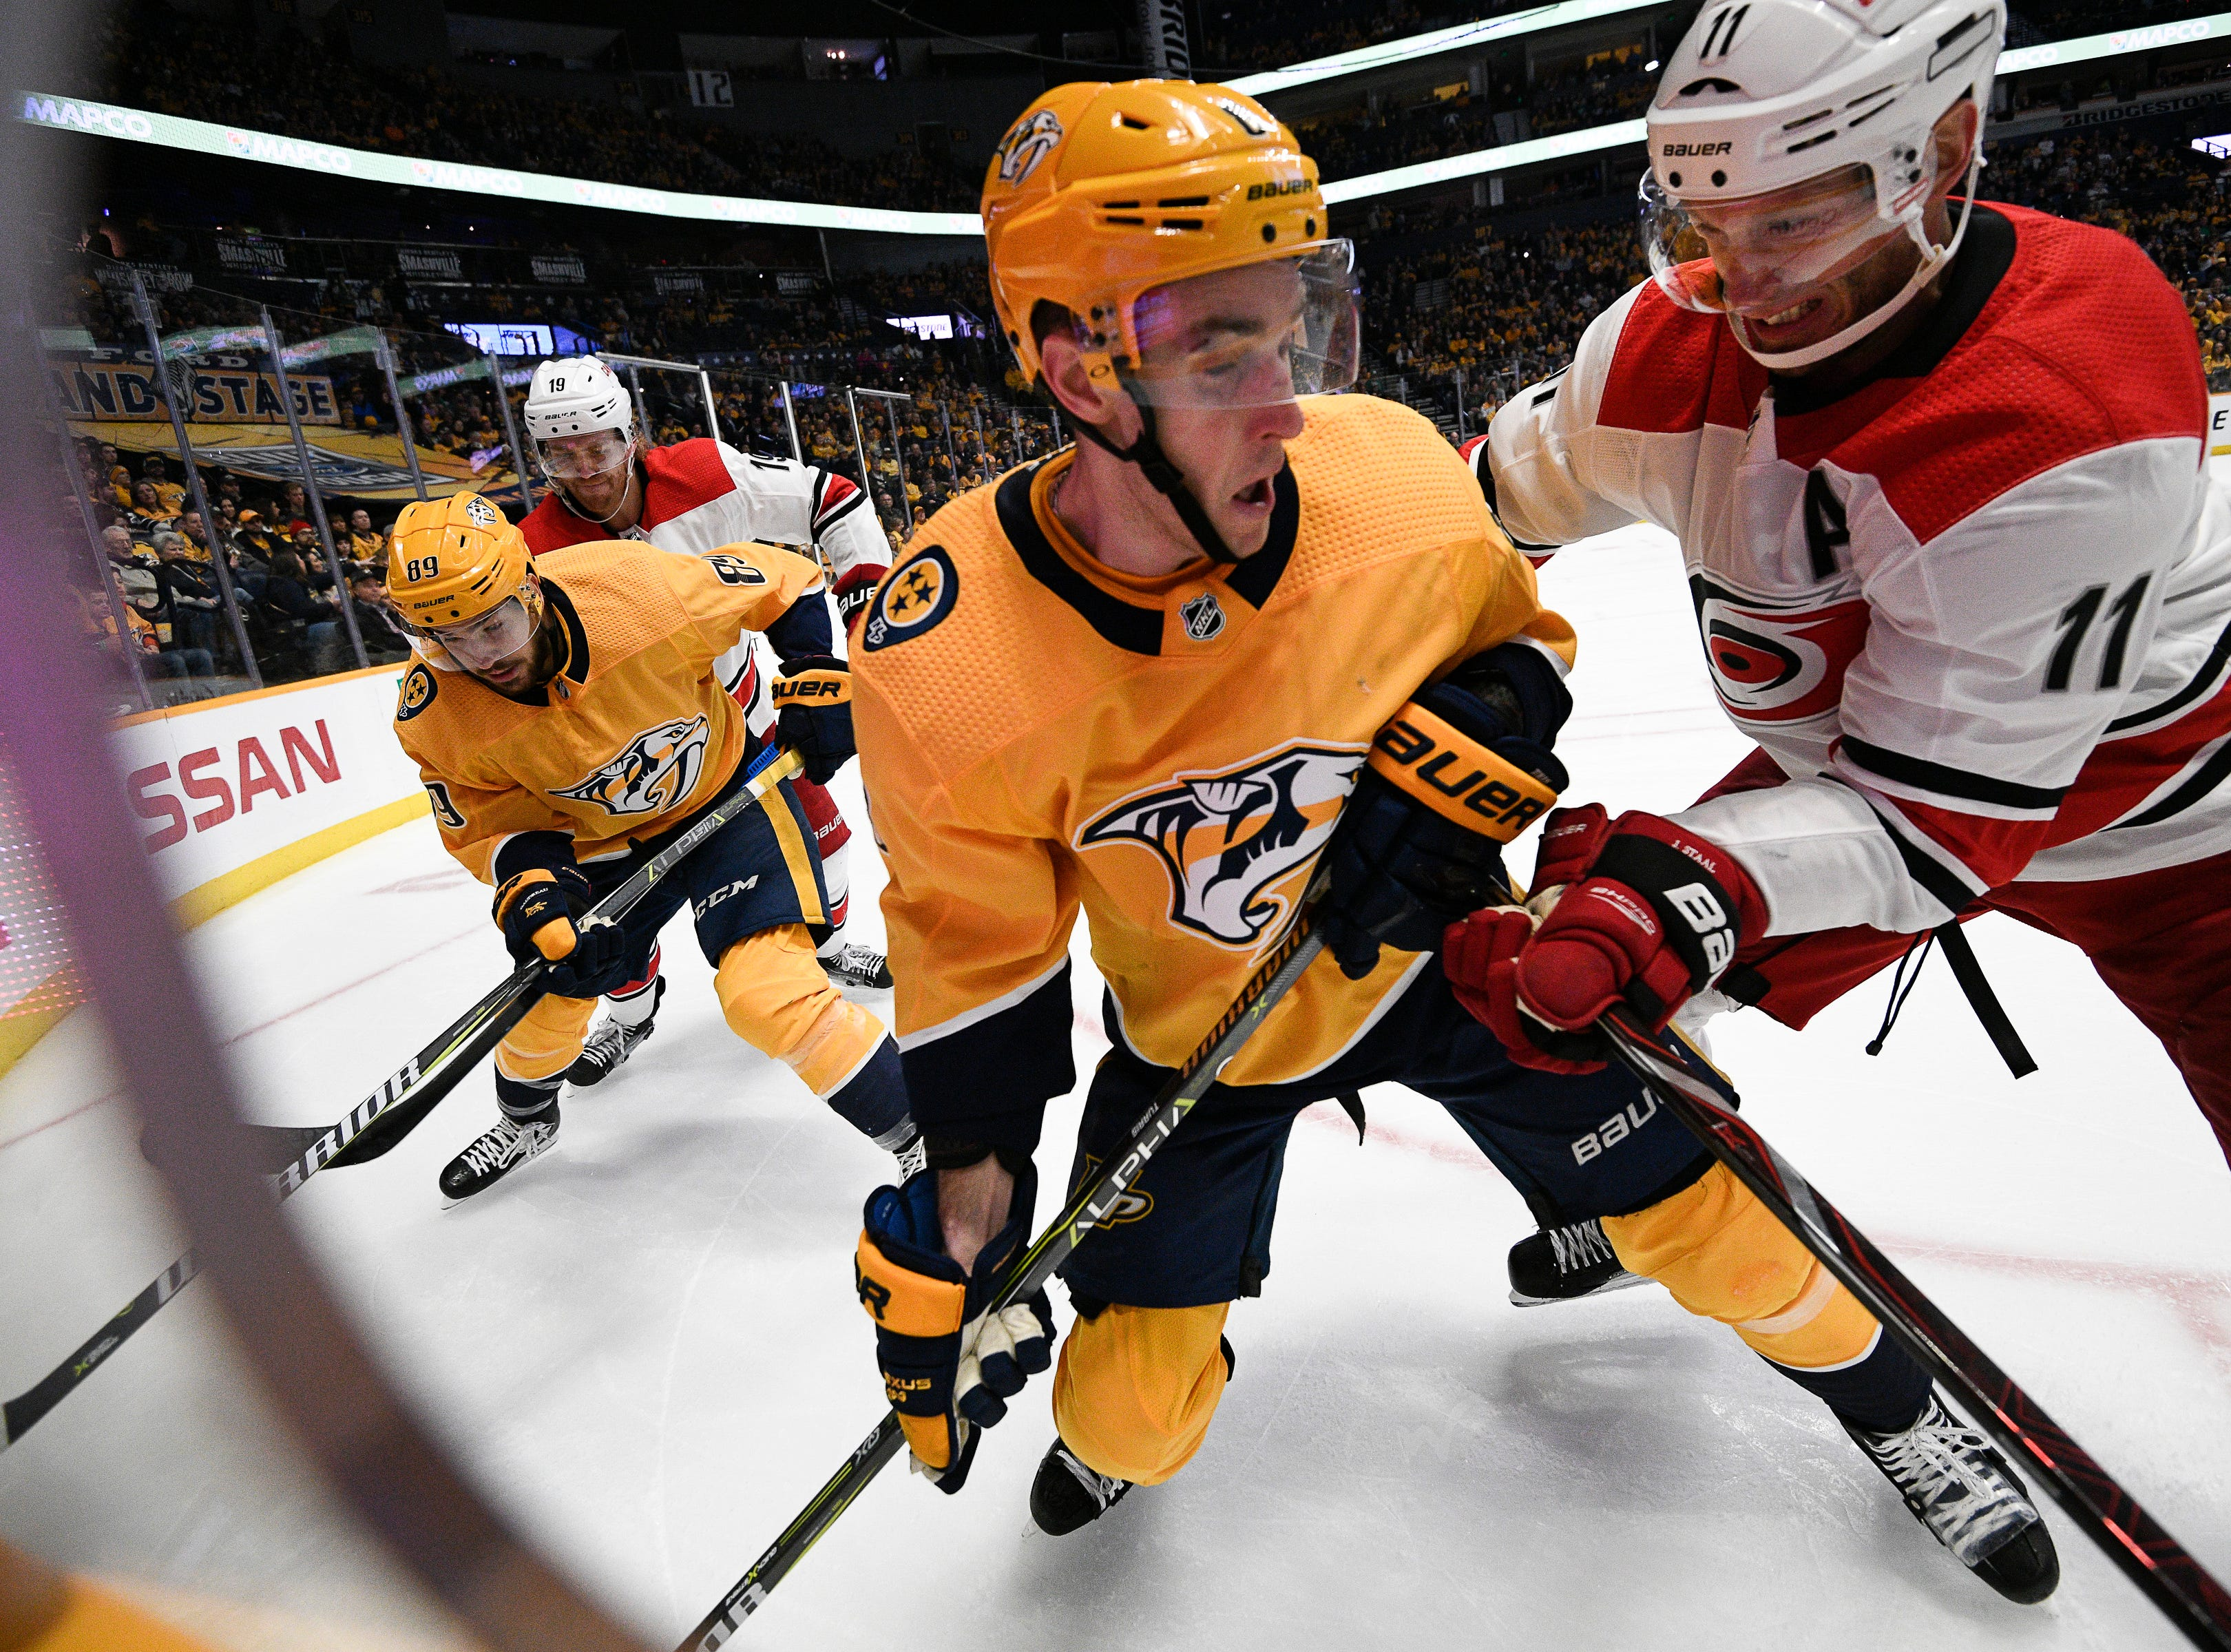 Predators center Kyle Turris (8) battles Hurricanes center Jordan Staal (11) for the puck during the third period at Bridgestone Arena Saturday, March 9, 2019 in Nashville, Tenn.